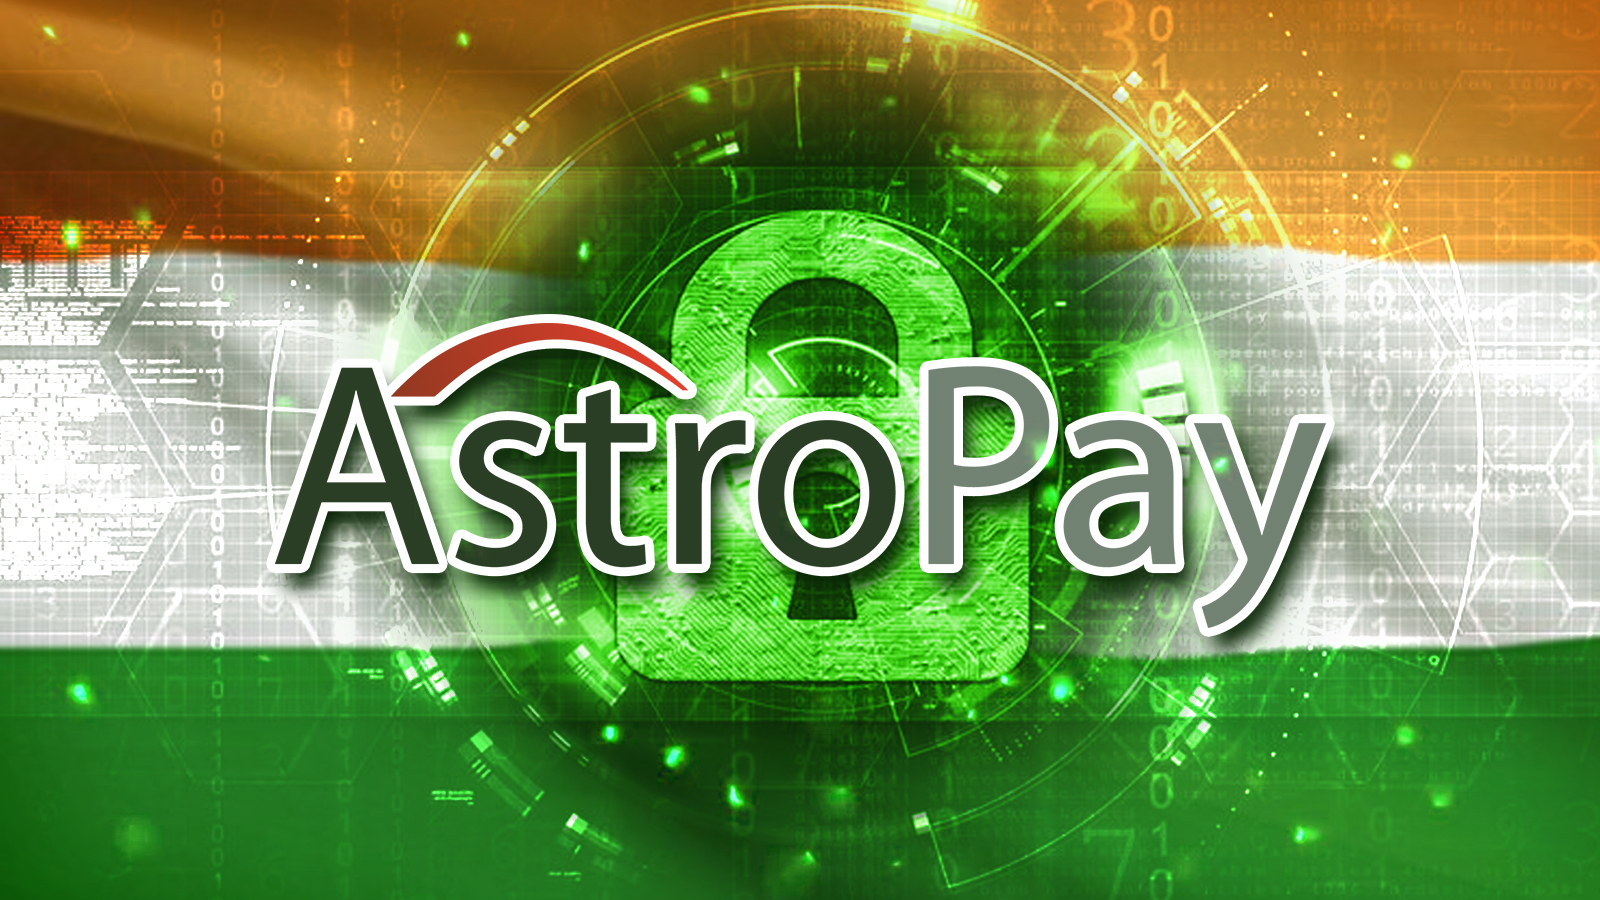 Your personal information and money are absolutely safe in Astropay system.